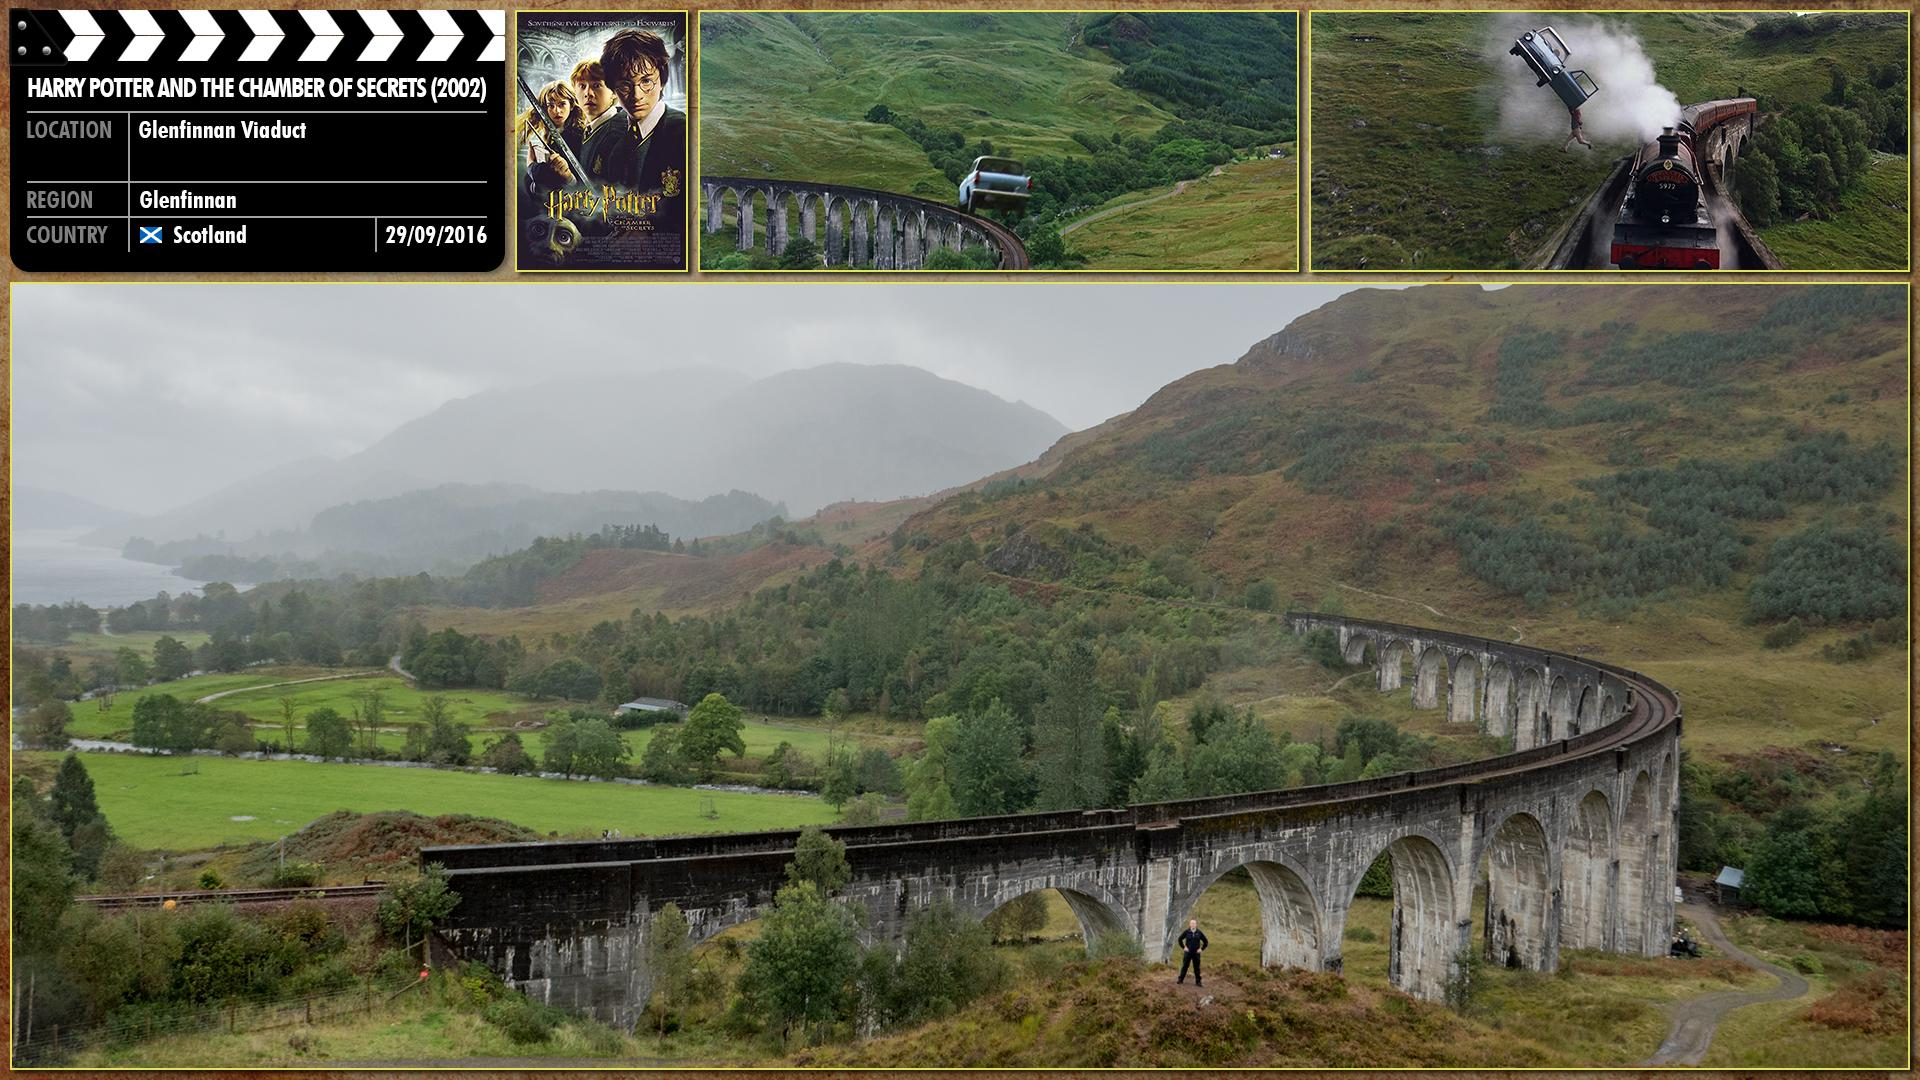 Filming location photo for Harry Potter and the Chamber of Secrets (2002) 1 of 1